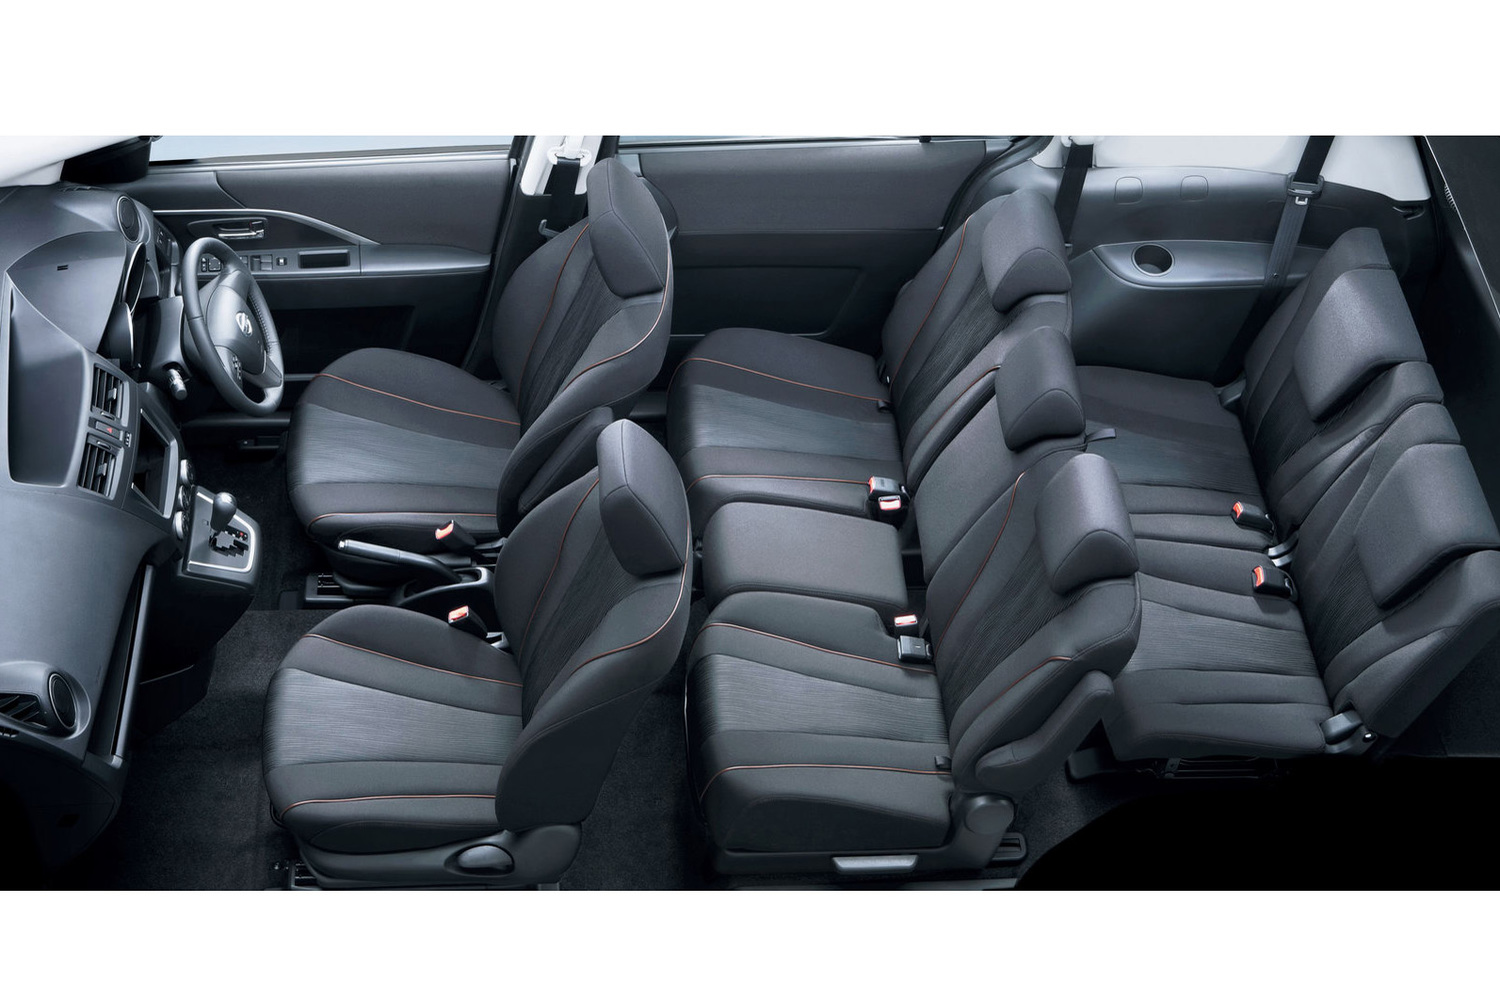 Seven Seater Suv >> What S The Best 7 Seater Suv Auto Expert By John Cadogan Save